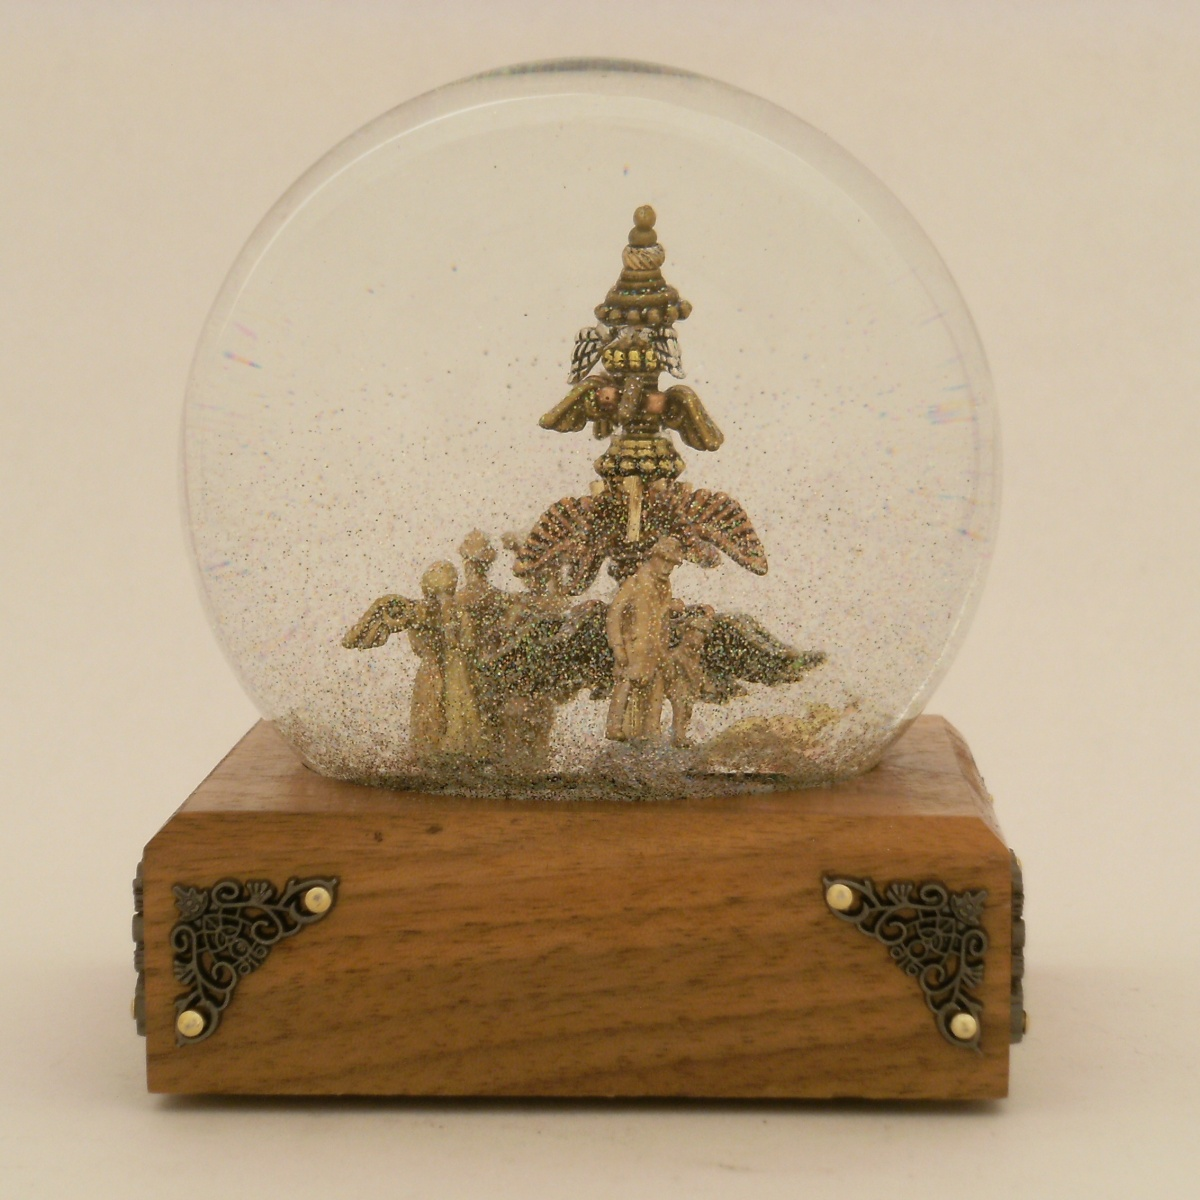 Glimpses of Angels snow globe Camryn Forrest Designs 2013